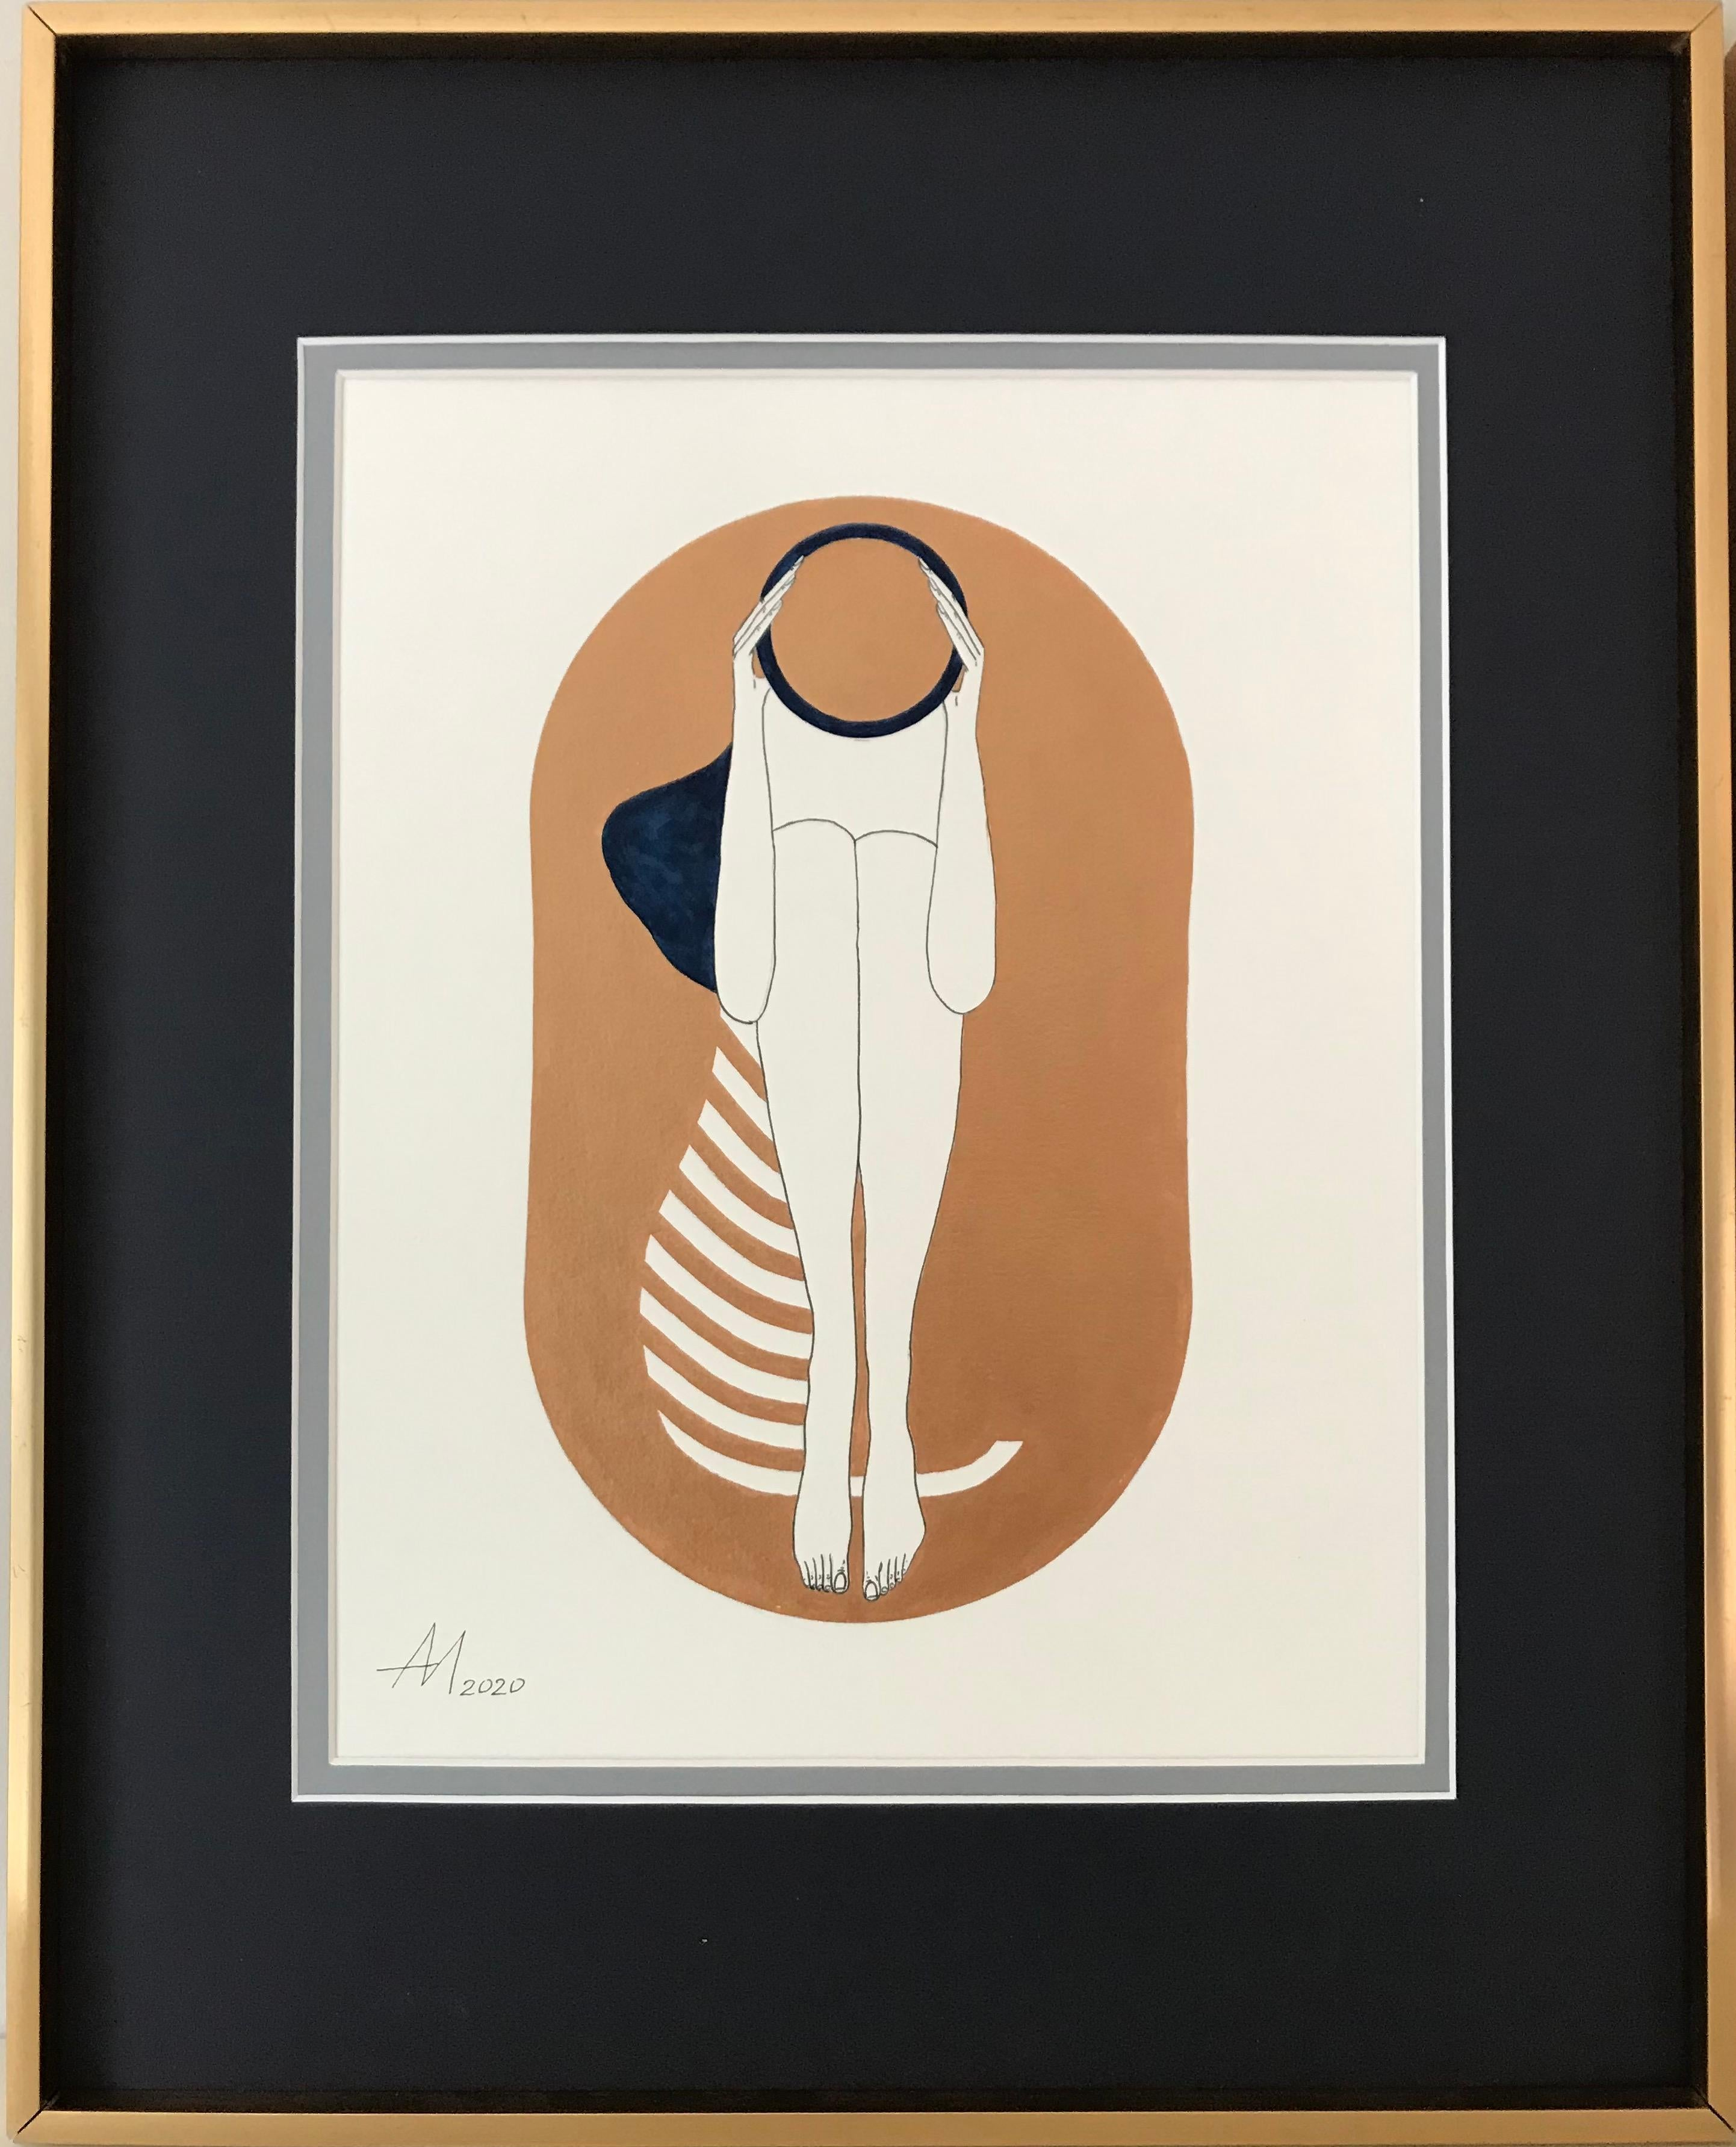 Bronze capsule - line drawing figure with deep blue disk and stripes